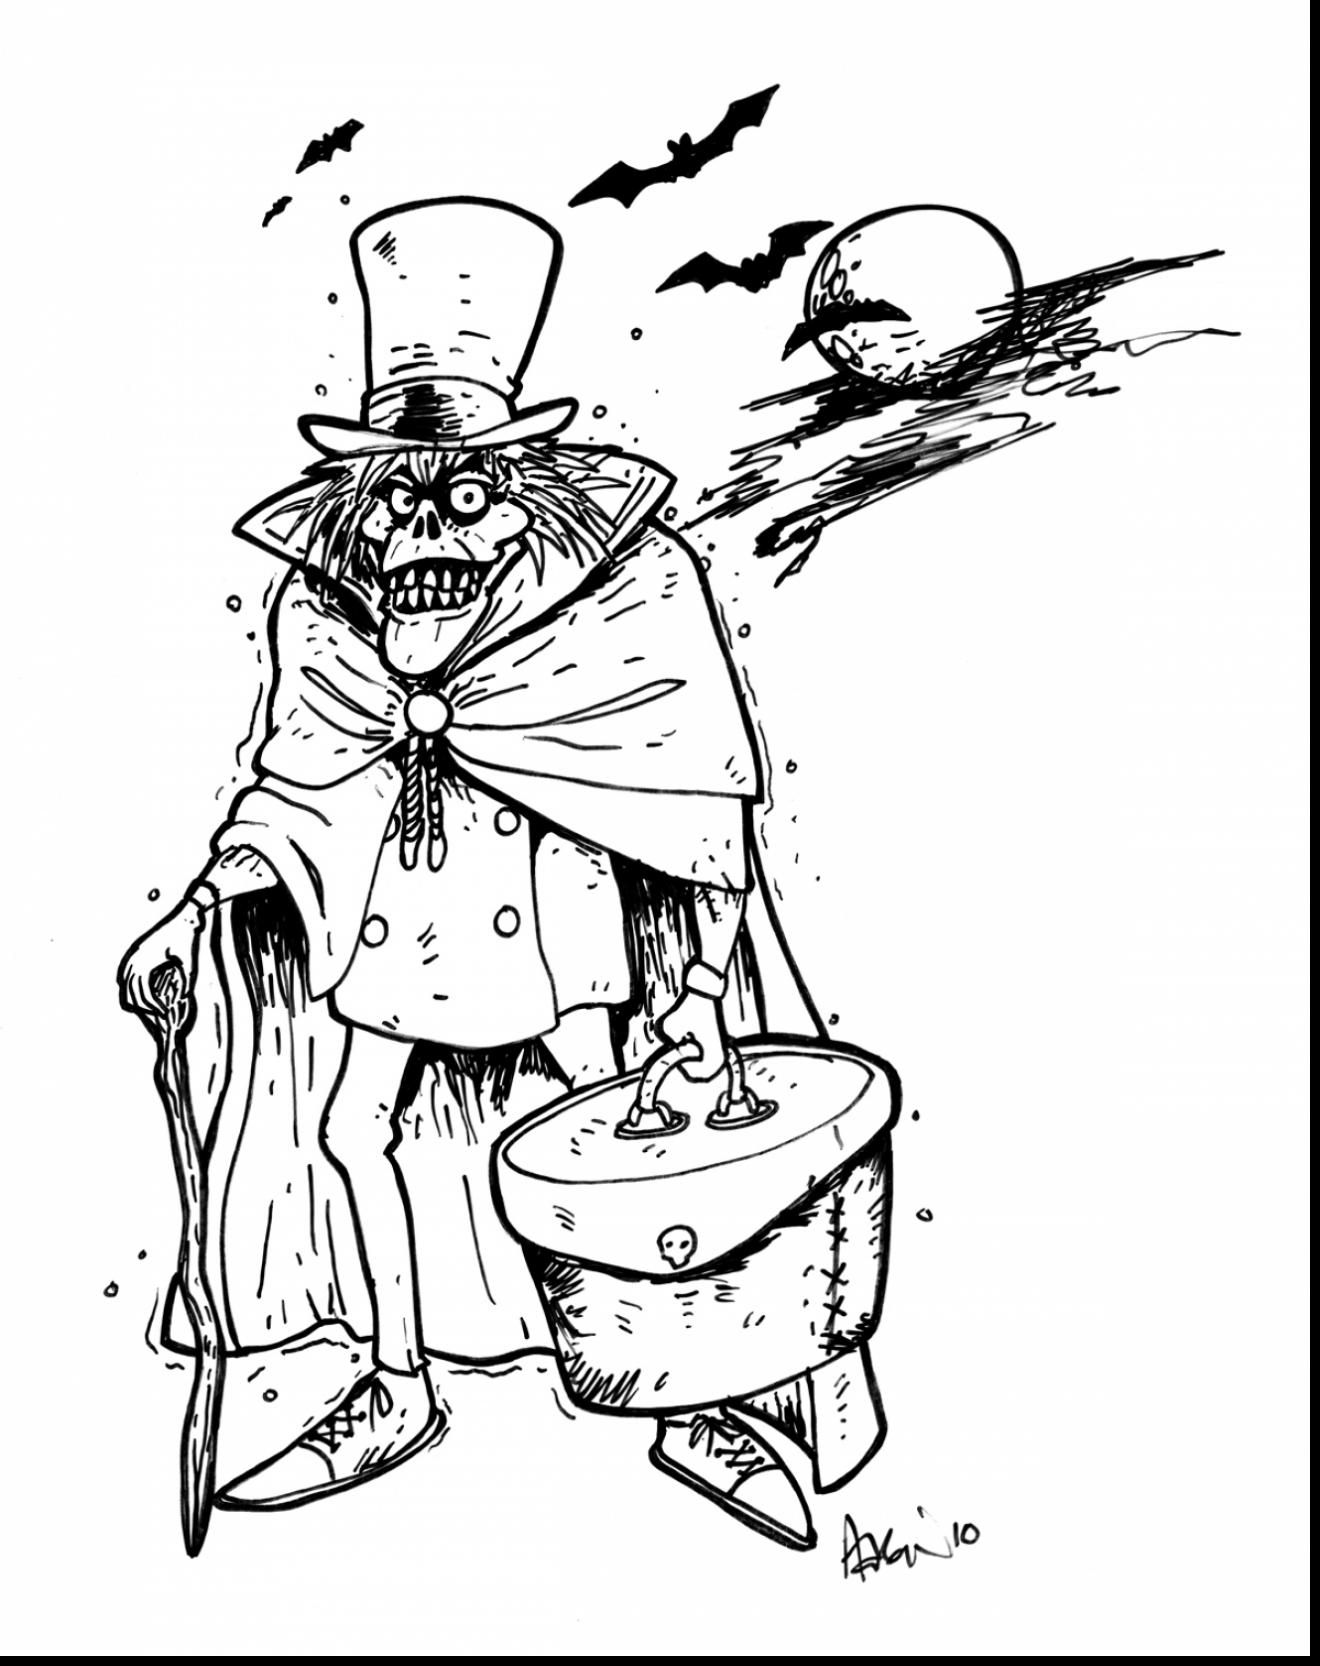 Disney Haunted Mansion Coloring Pages Download House Colouring Pages Coloring Pages Halloween Coloring Pages Printable